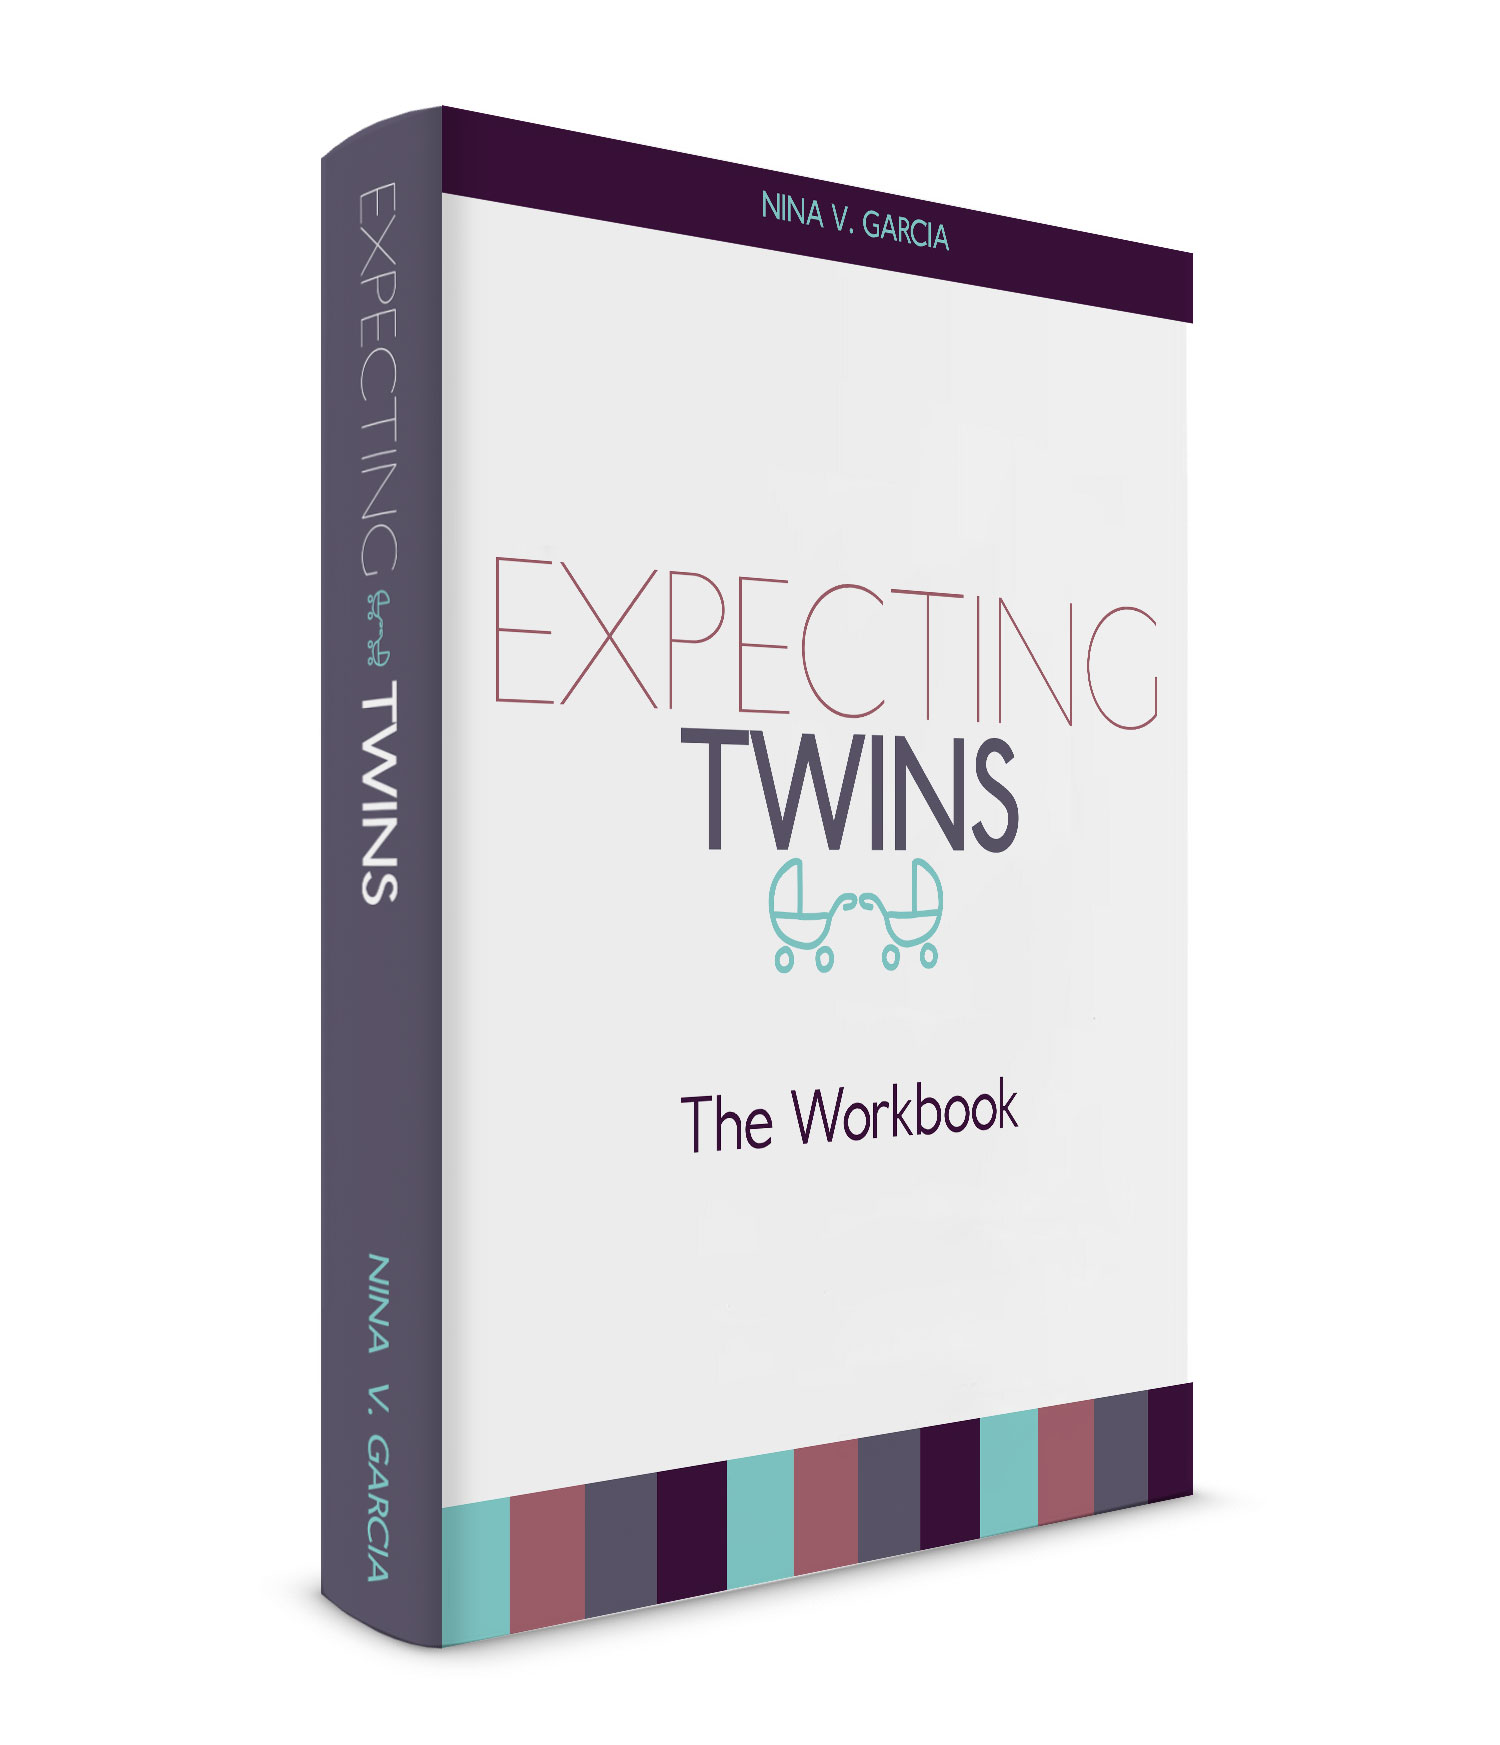 Expecting Twins is the ultimate guide for expectant moms on preparing and caring for twins. Get the Expecting Twins Guide for the information, guidance and community you need as you prepare for your twins.